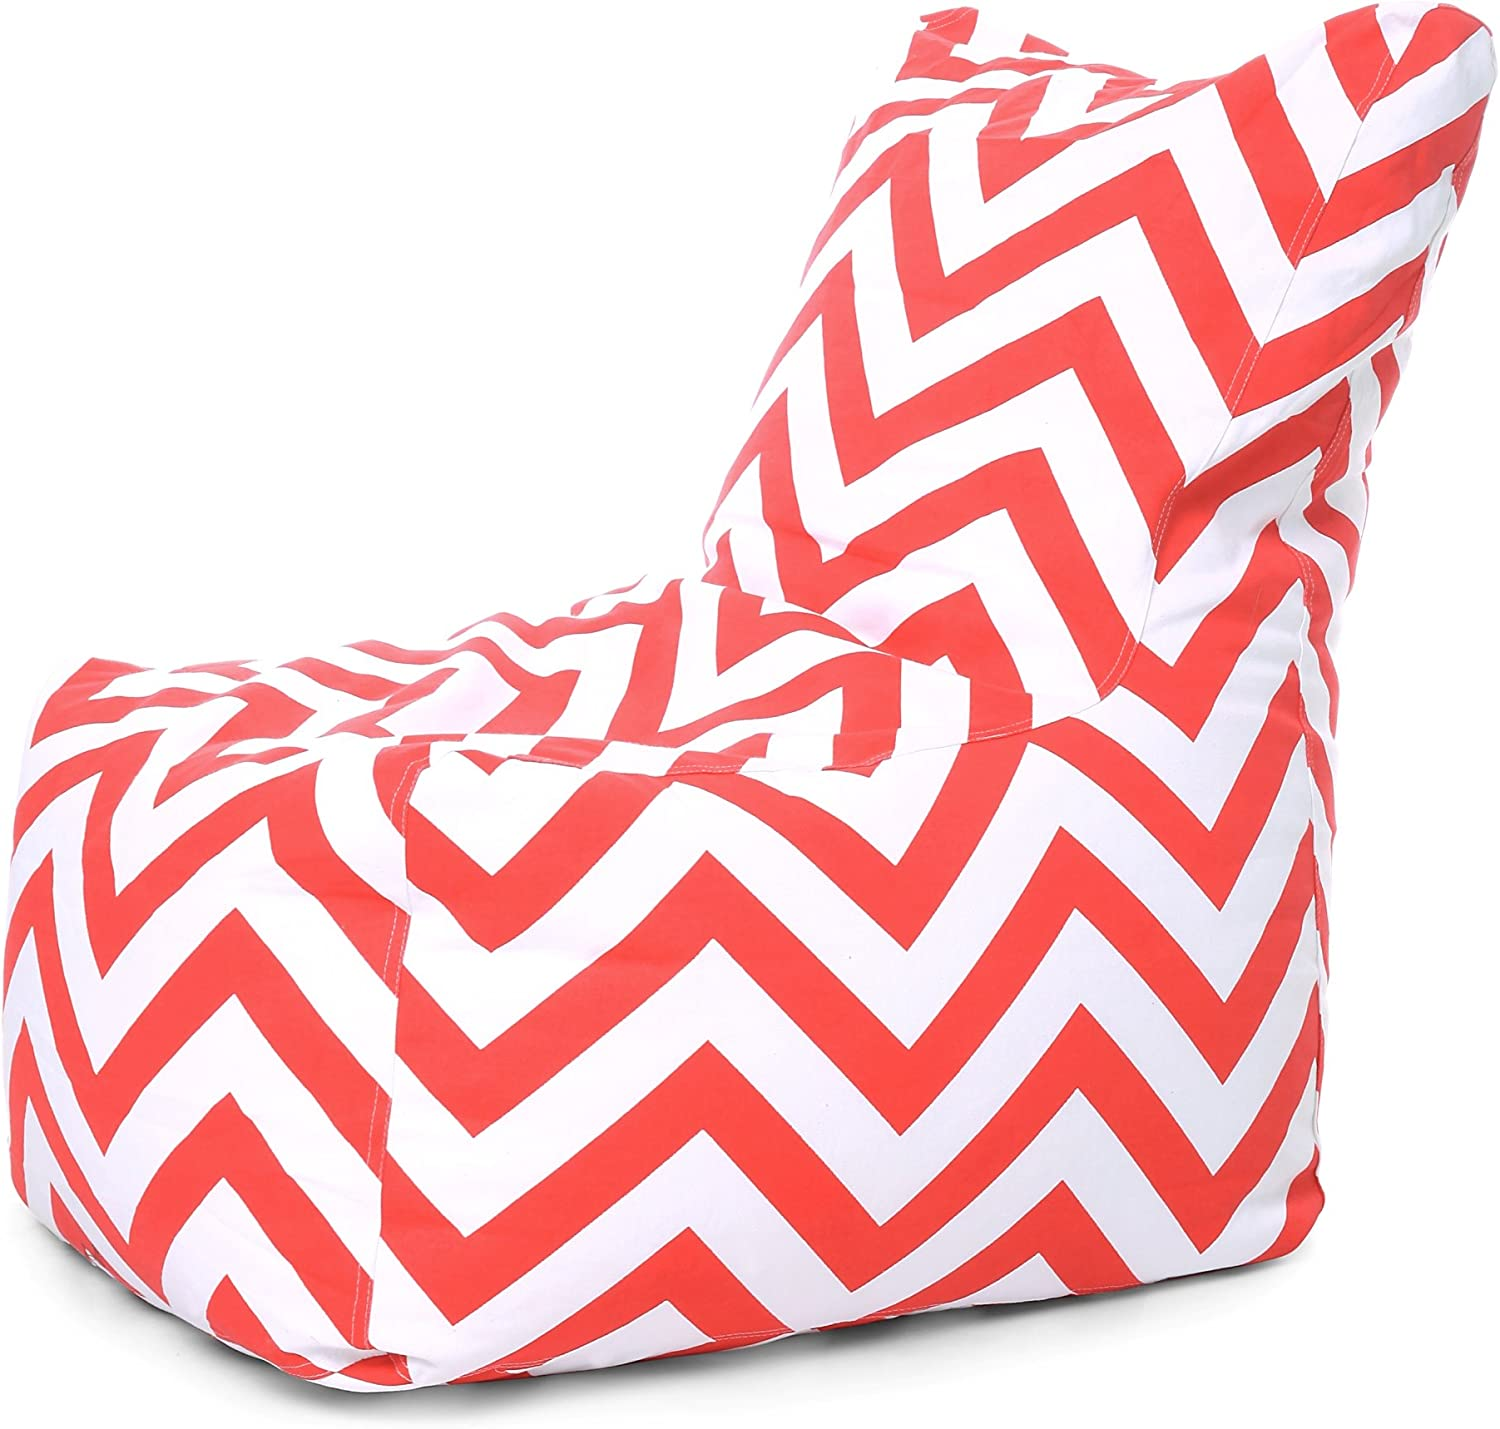 Style Homez Chair Cotton Canvas Stripes Printed Bean Bag XXL Size Cover Only